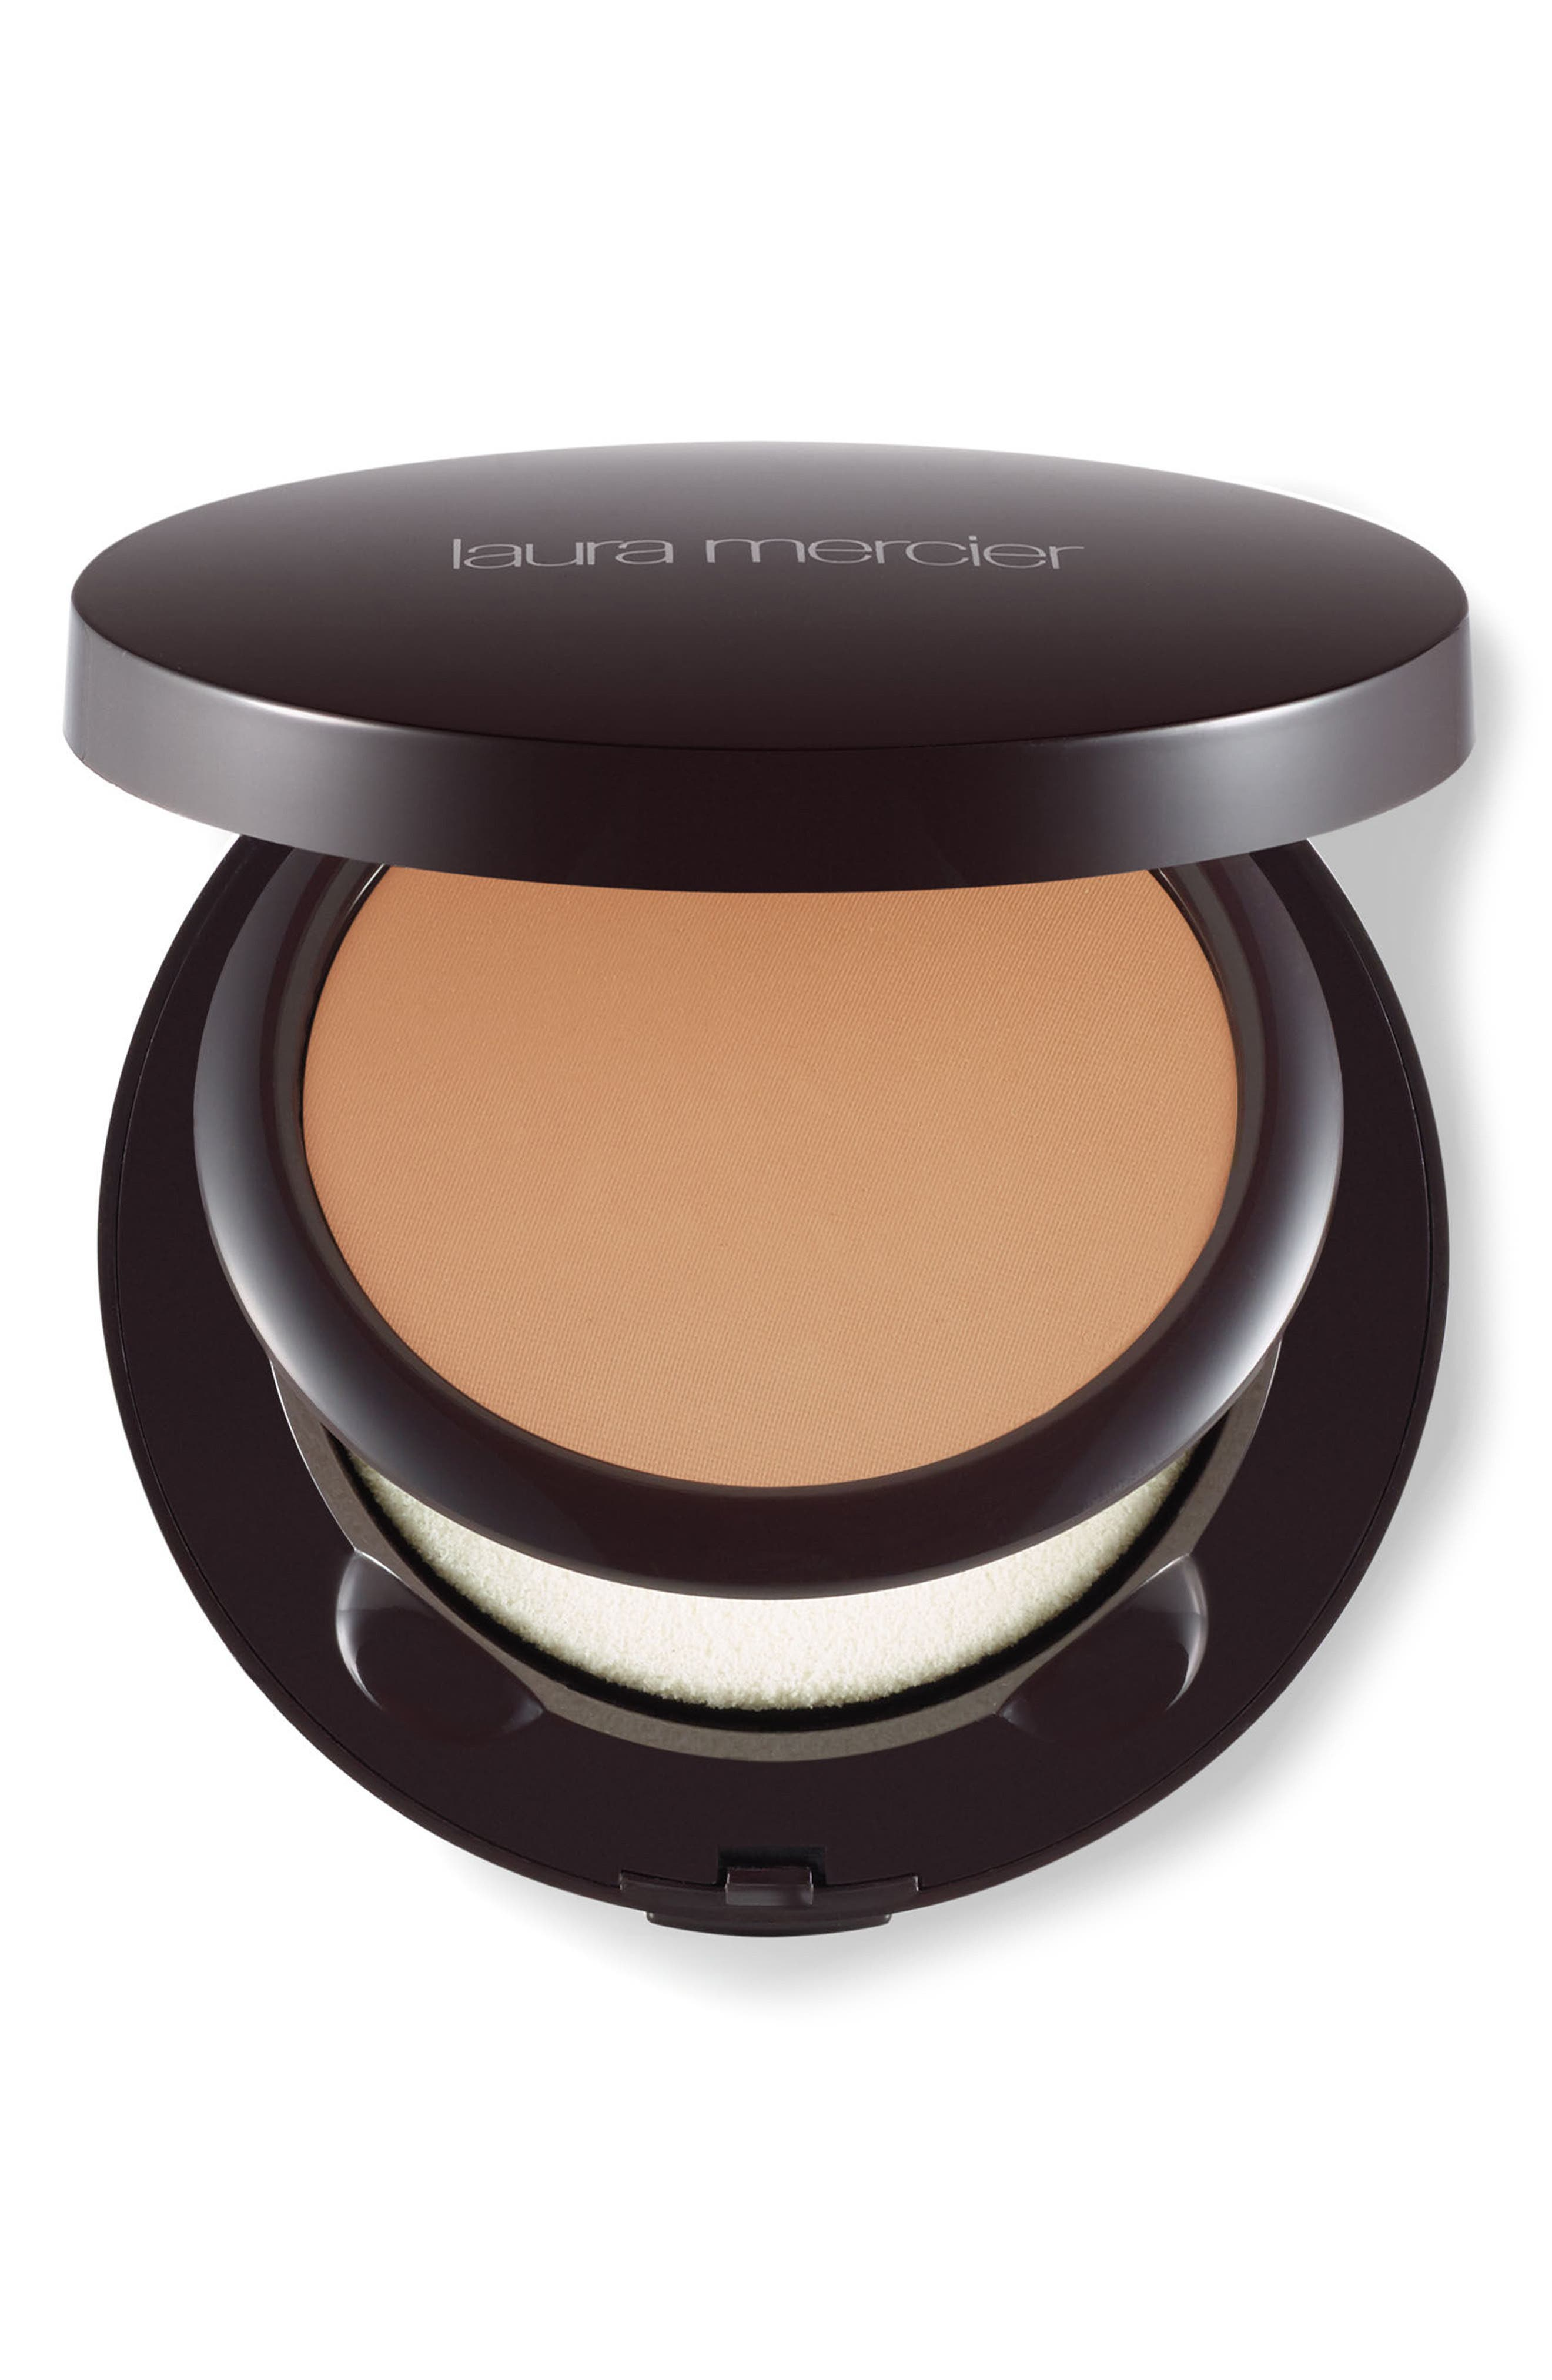 SMOOTH FINISH FOUNDATION POWDER 13 0.3 OZ/ 9.2 G